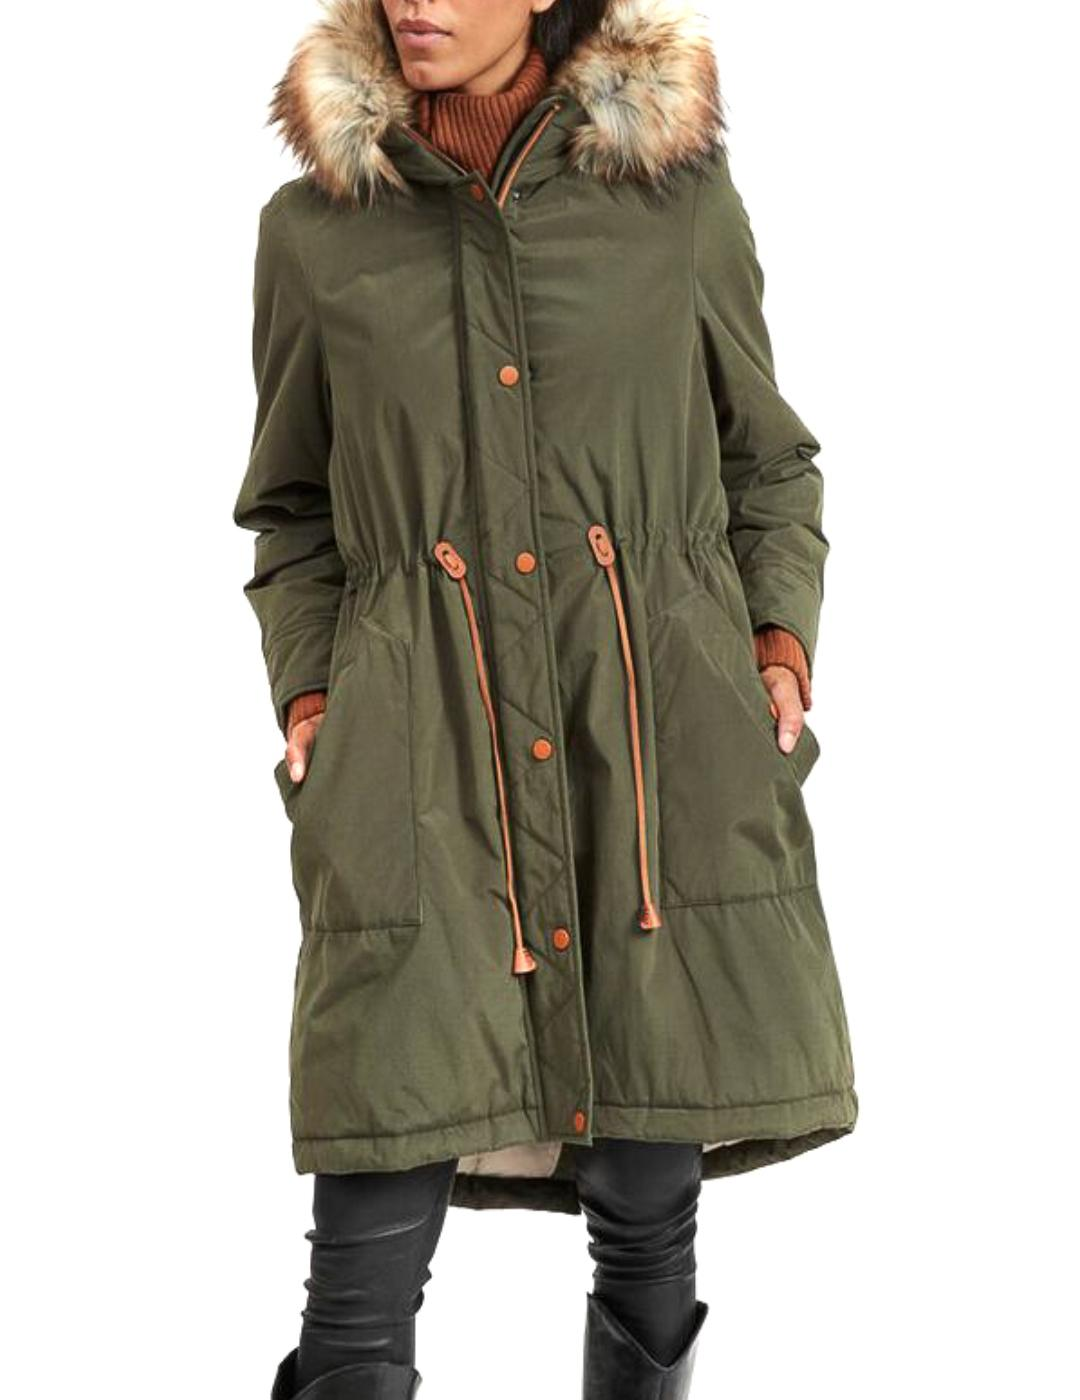 VIFLAVIA NEW LONG PARKA/SU FOREST-X